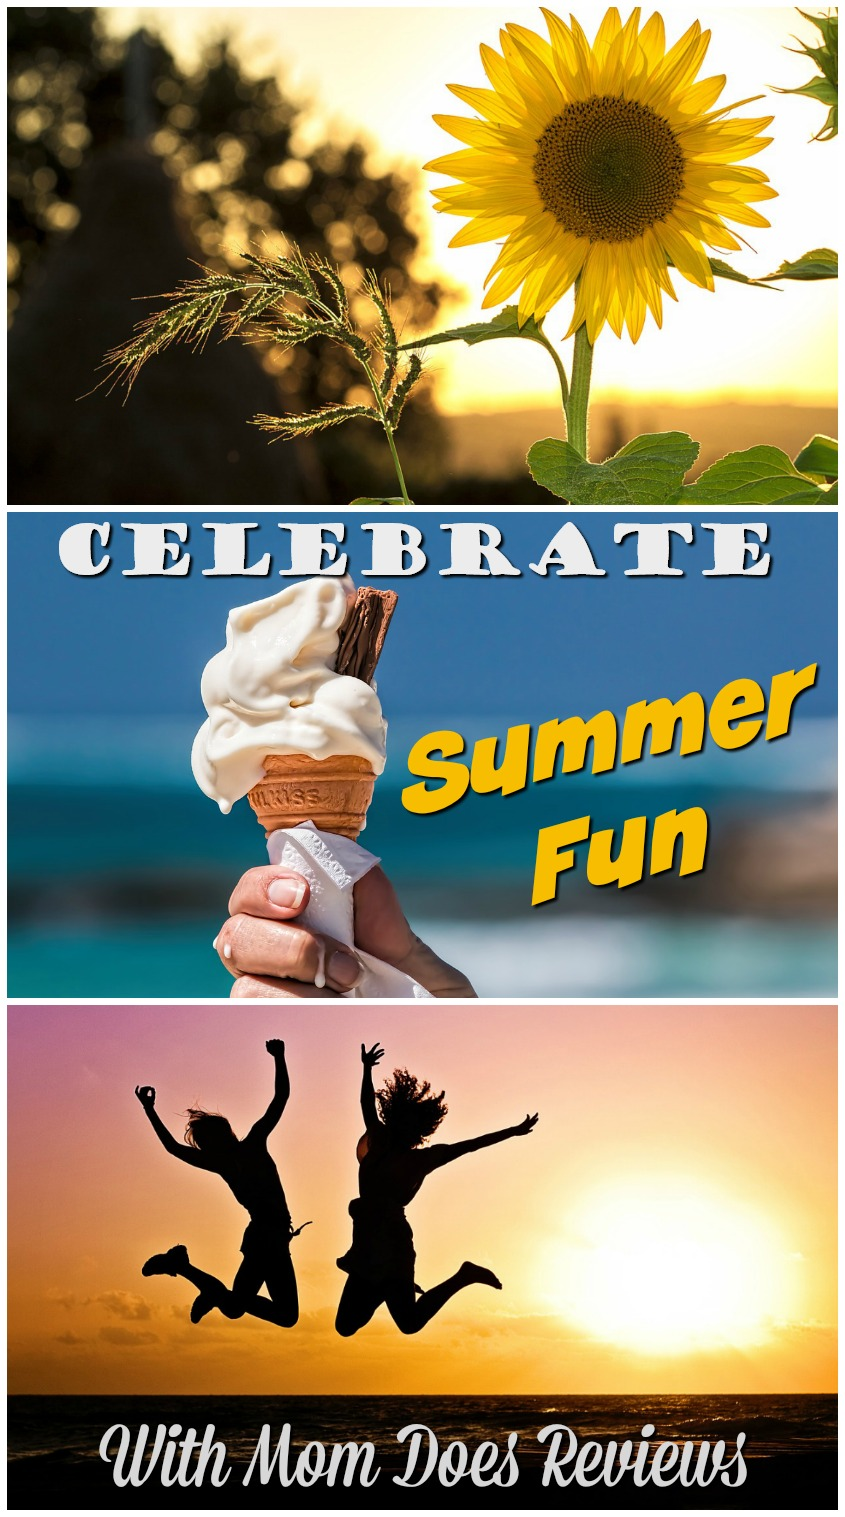 Celebrate Summer Fun 2019 #MDRsummerFun #gifts #giftguide #giftideas #summer